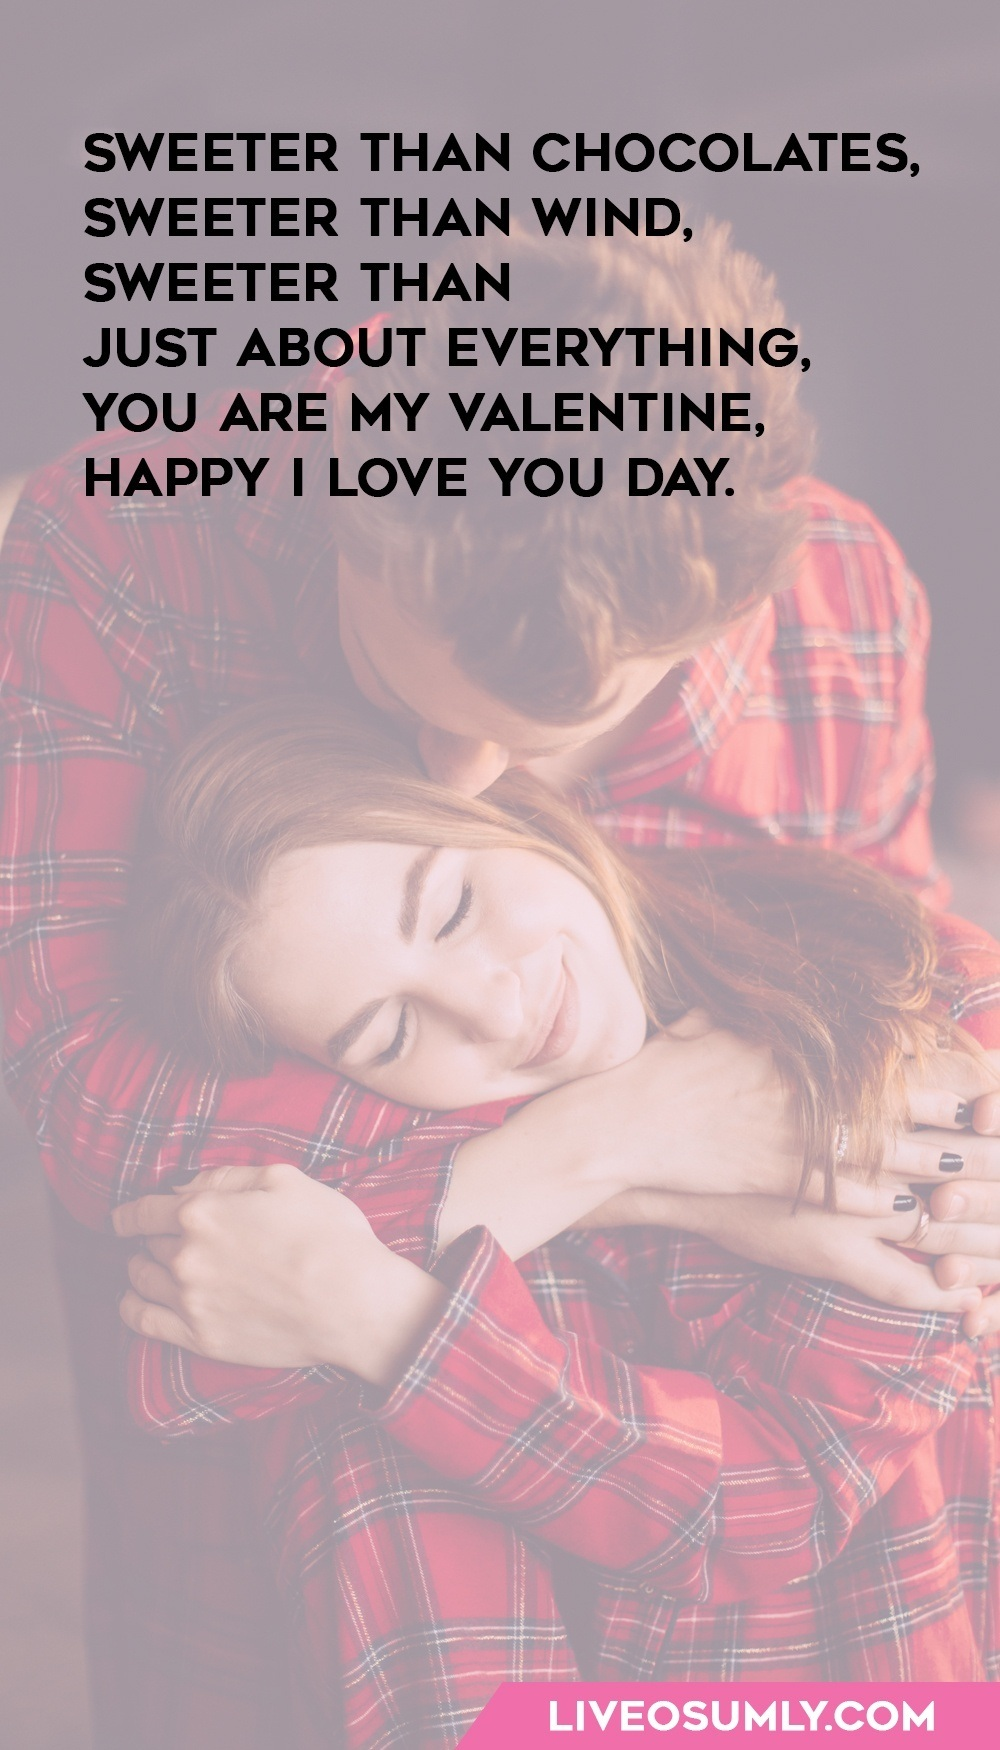 21. V Day Quotes